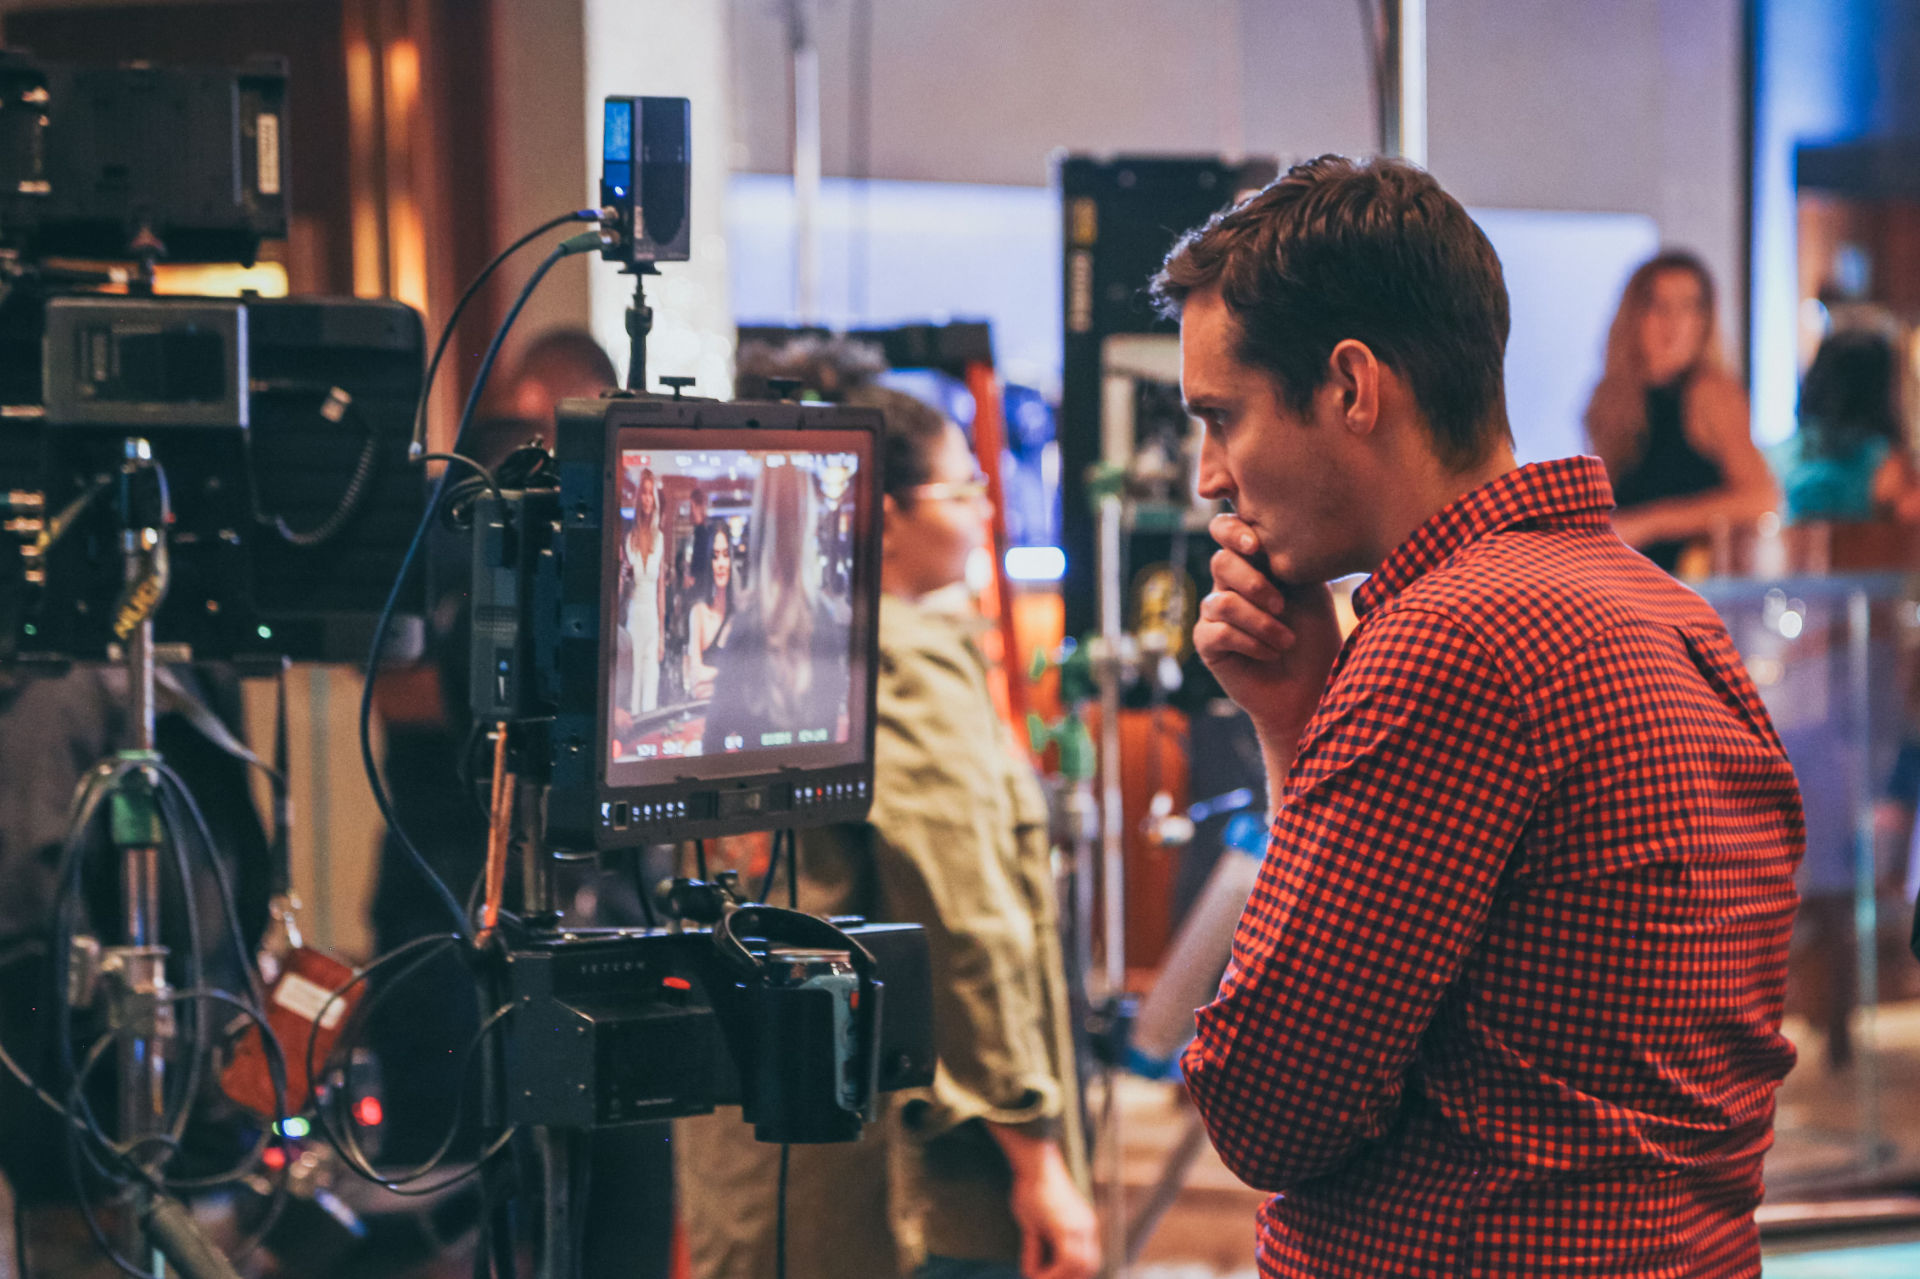 Director Tim Warren - South Florida Seminole Hard Rock Hotel and Casino - Artex Productions - Best Commercial Video Production, VFX and Animation Team in Miami